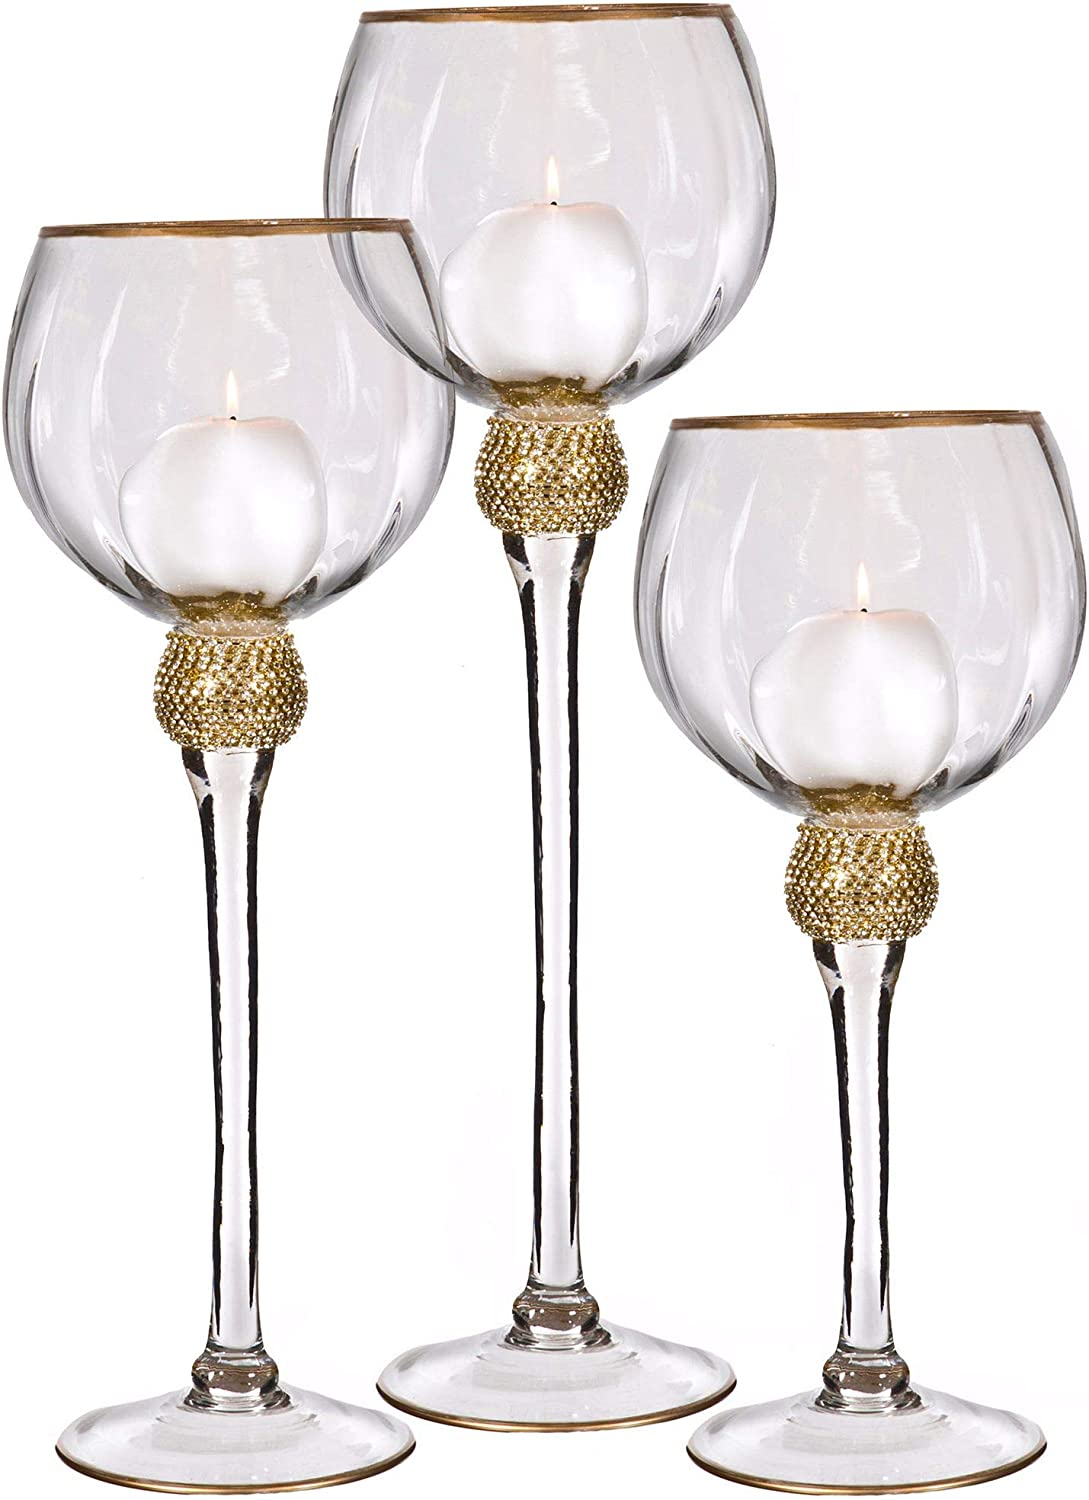 Palais Glassware Elegant Bougeoir Collection, Set of 3 Hurricane Candle Holders (Clear with Gold Diamonds and Rims)